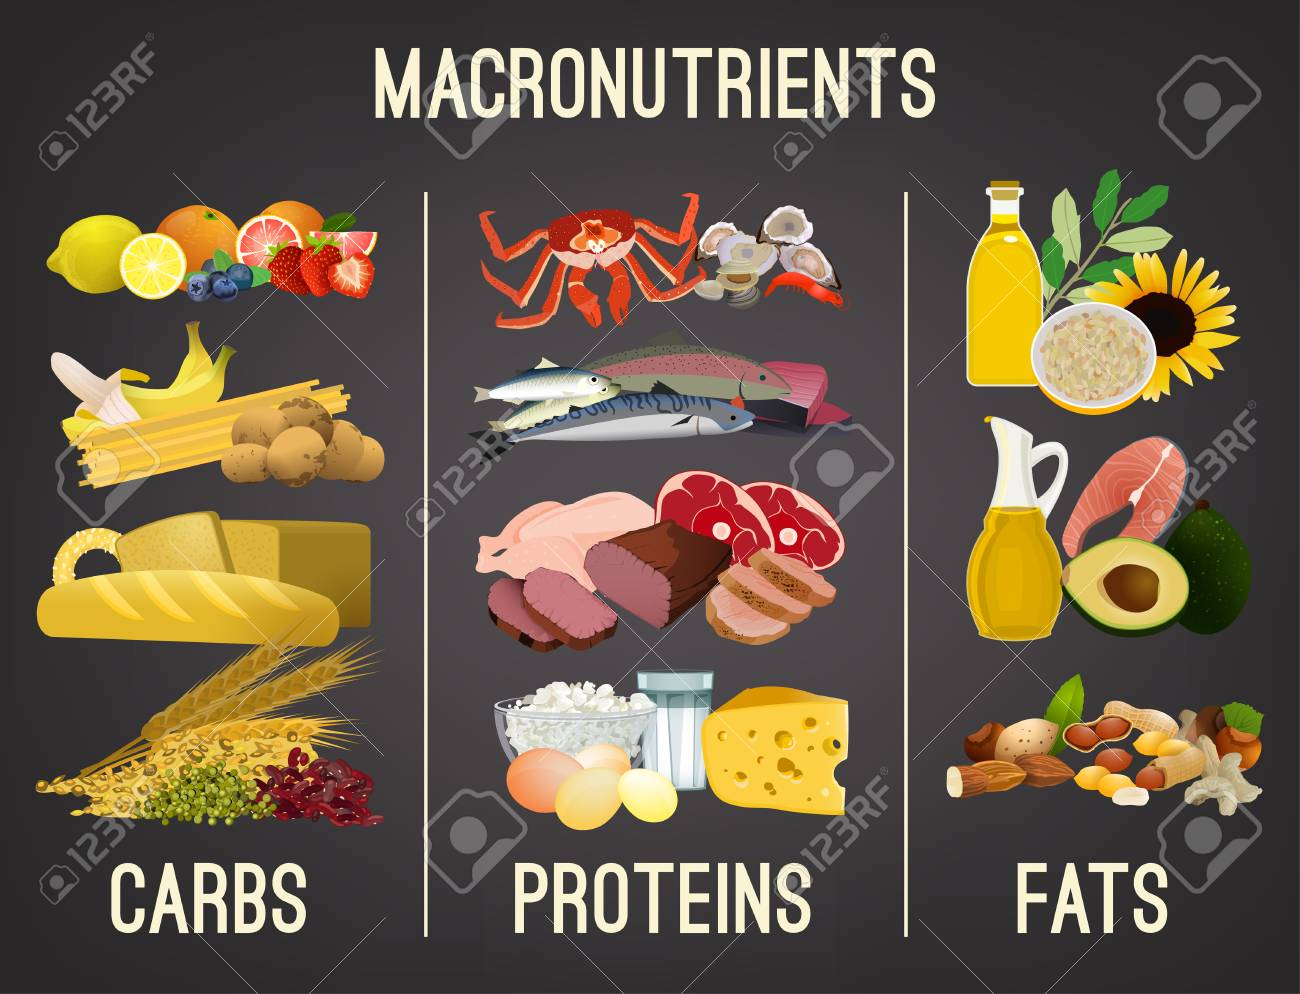 Main food groups - macronutrients. Carbohydrates, fats and proteins in comparison. Dieting, healthcare and eutrophy concept. Vector illustration isolated on a dark grey background. Landscape poster. - 103233357